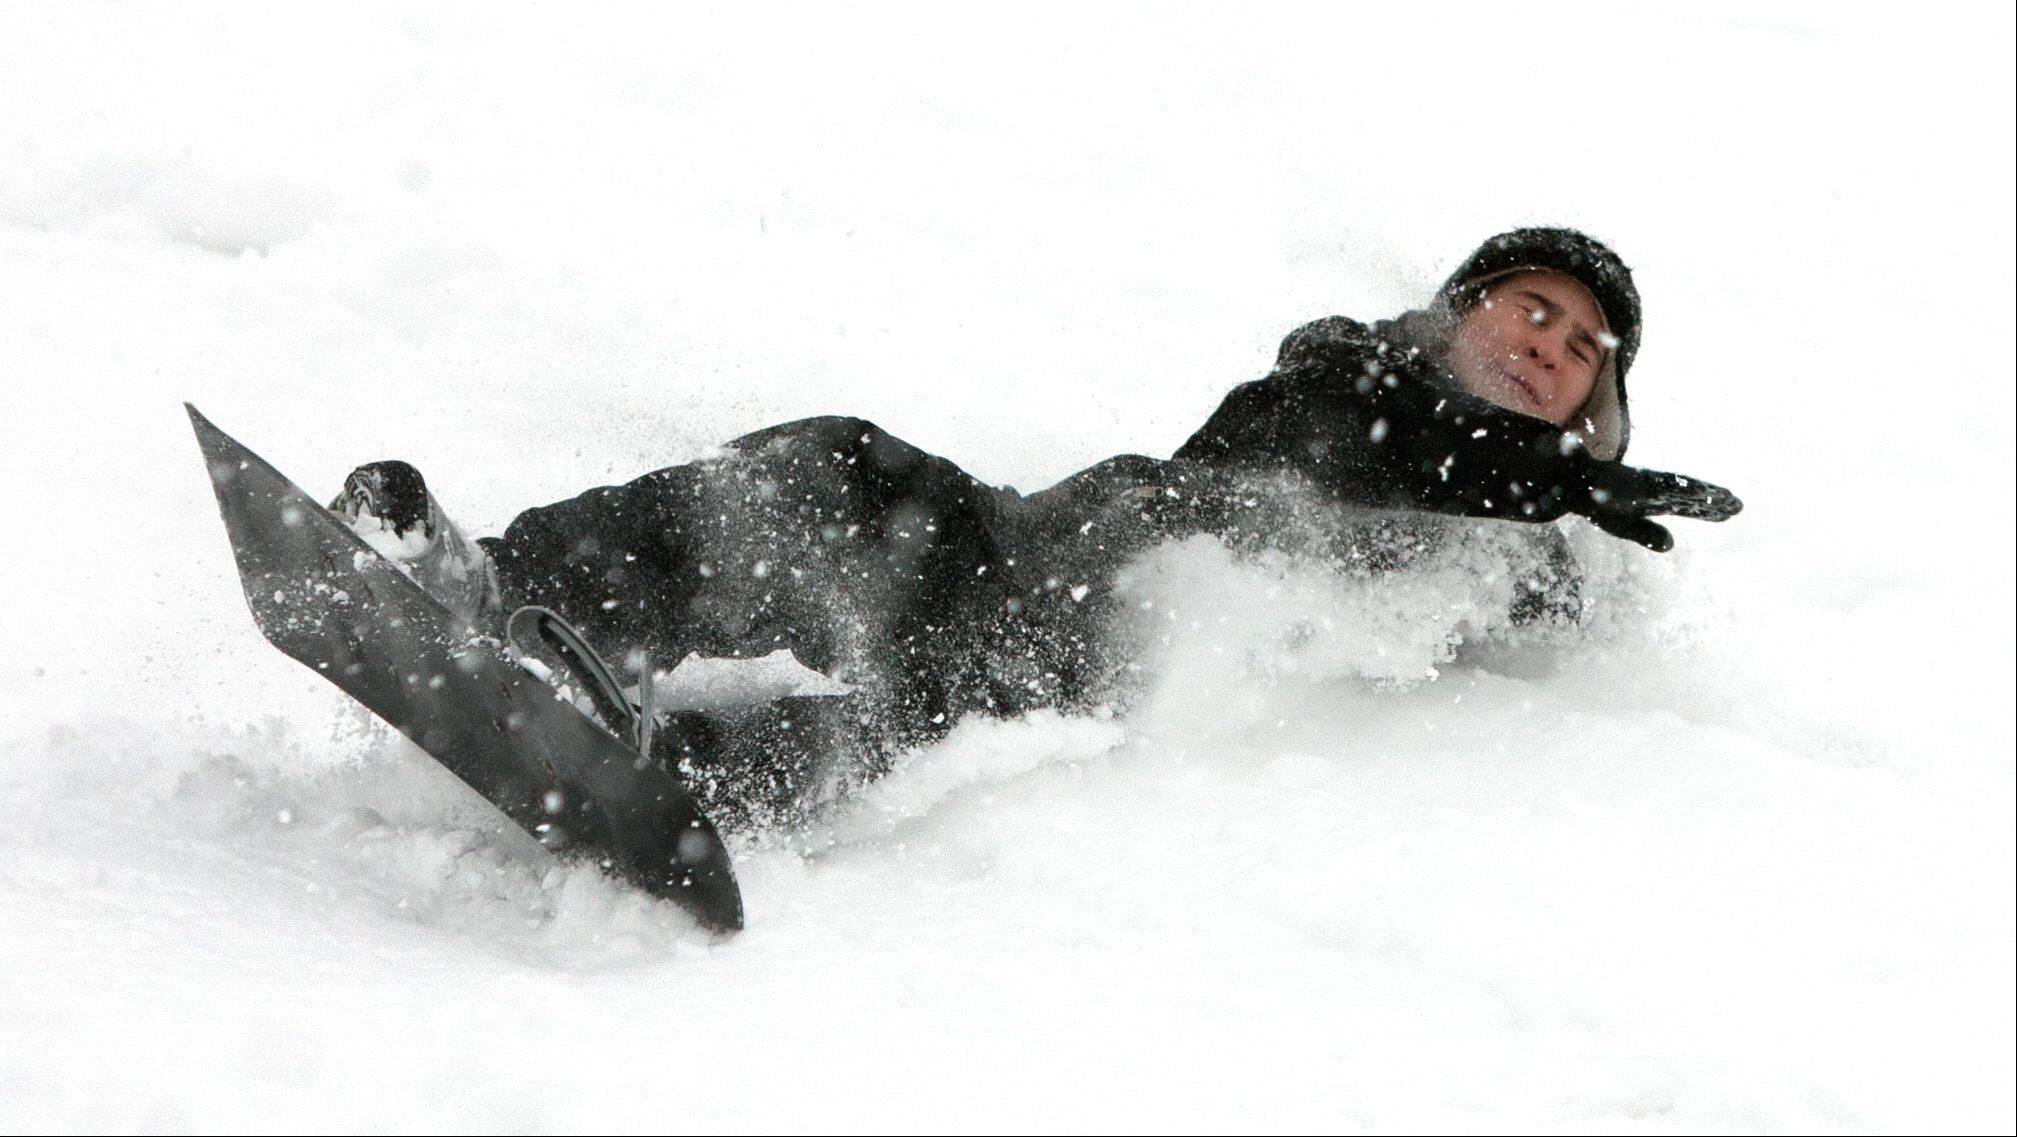 Luke Hogan, of Western Springs, enjoys snowboarding down a hill next to the Oak Brook Public Library.